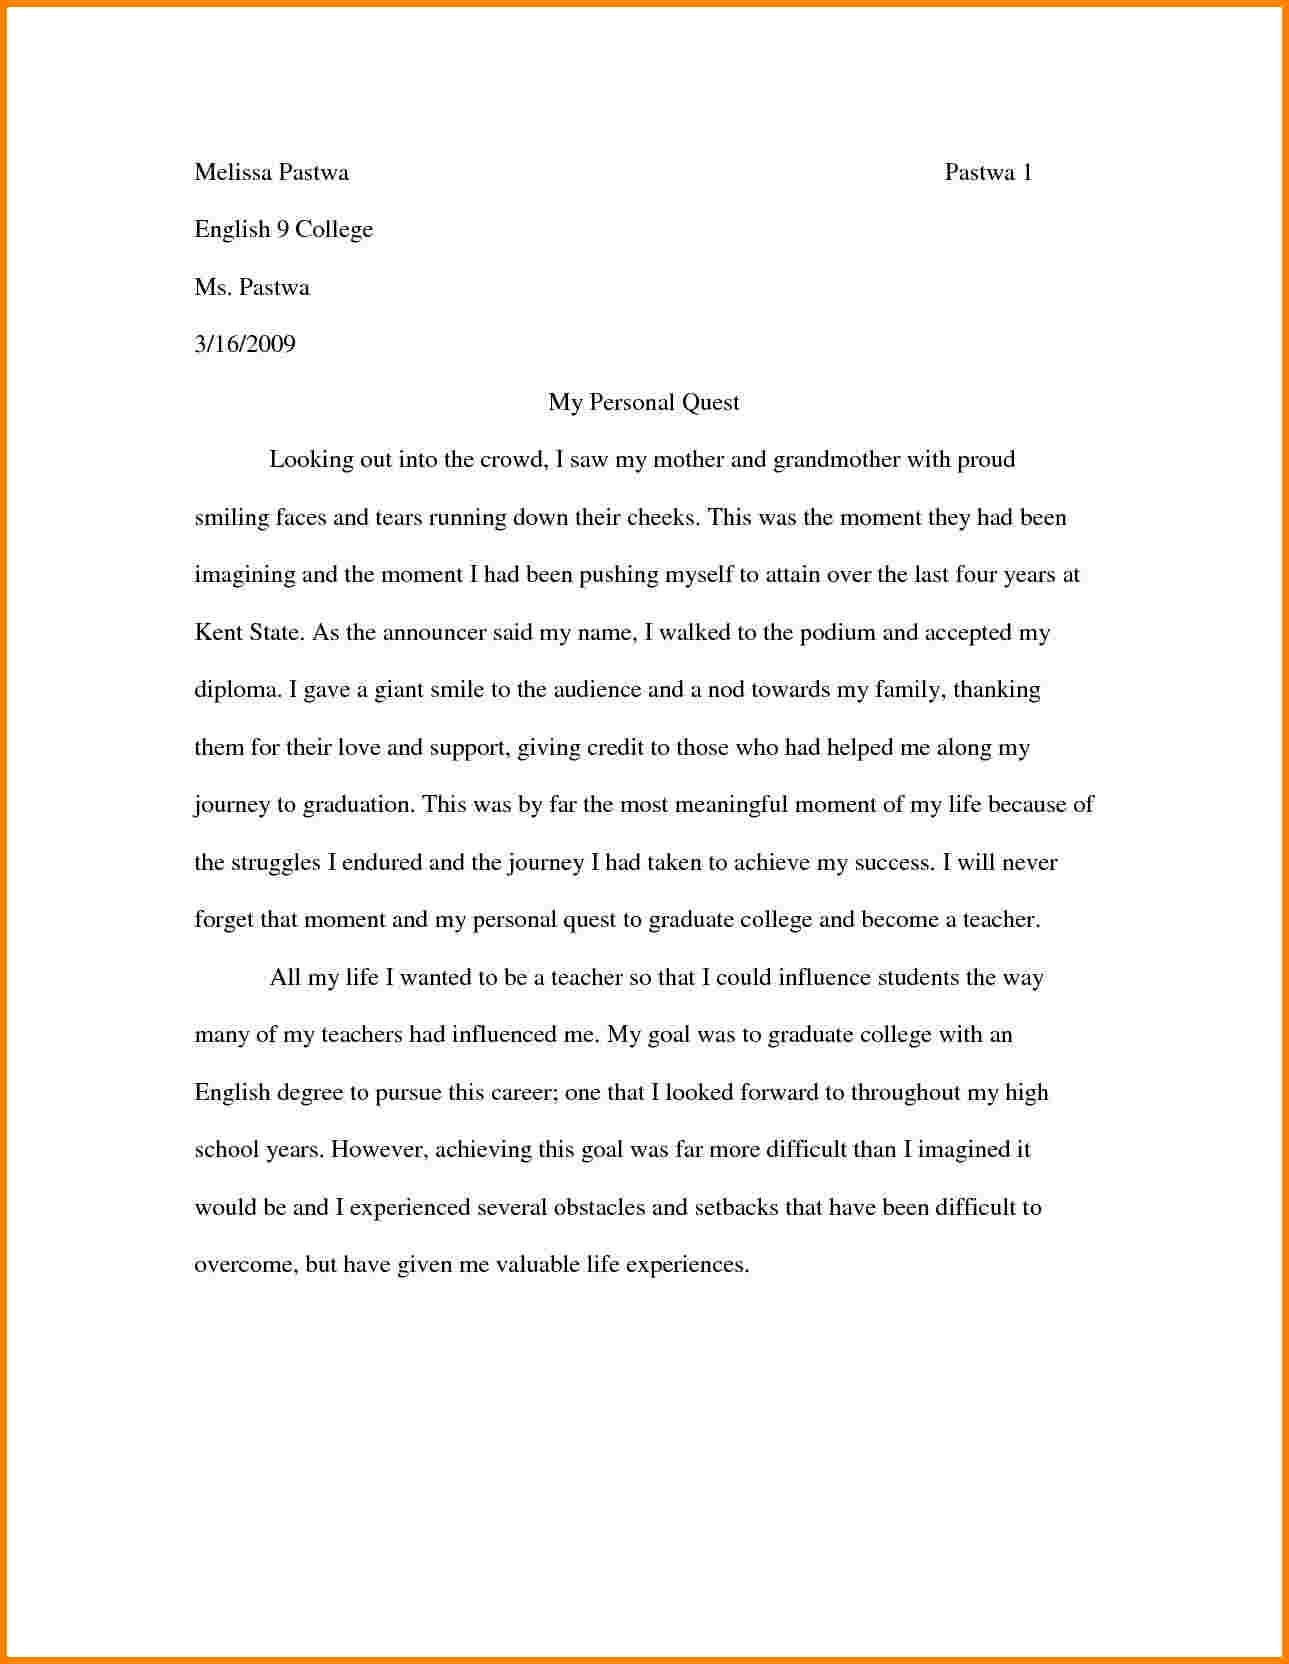 002 College Essays Essay Examples Writings And Application Example Of Philosophy Statement Case Best Frightening 2017 Texas Uc Prompts Pdf Full